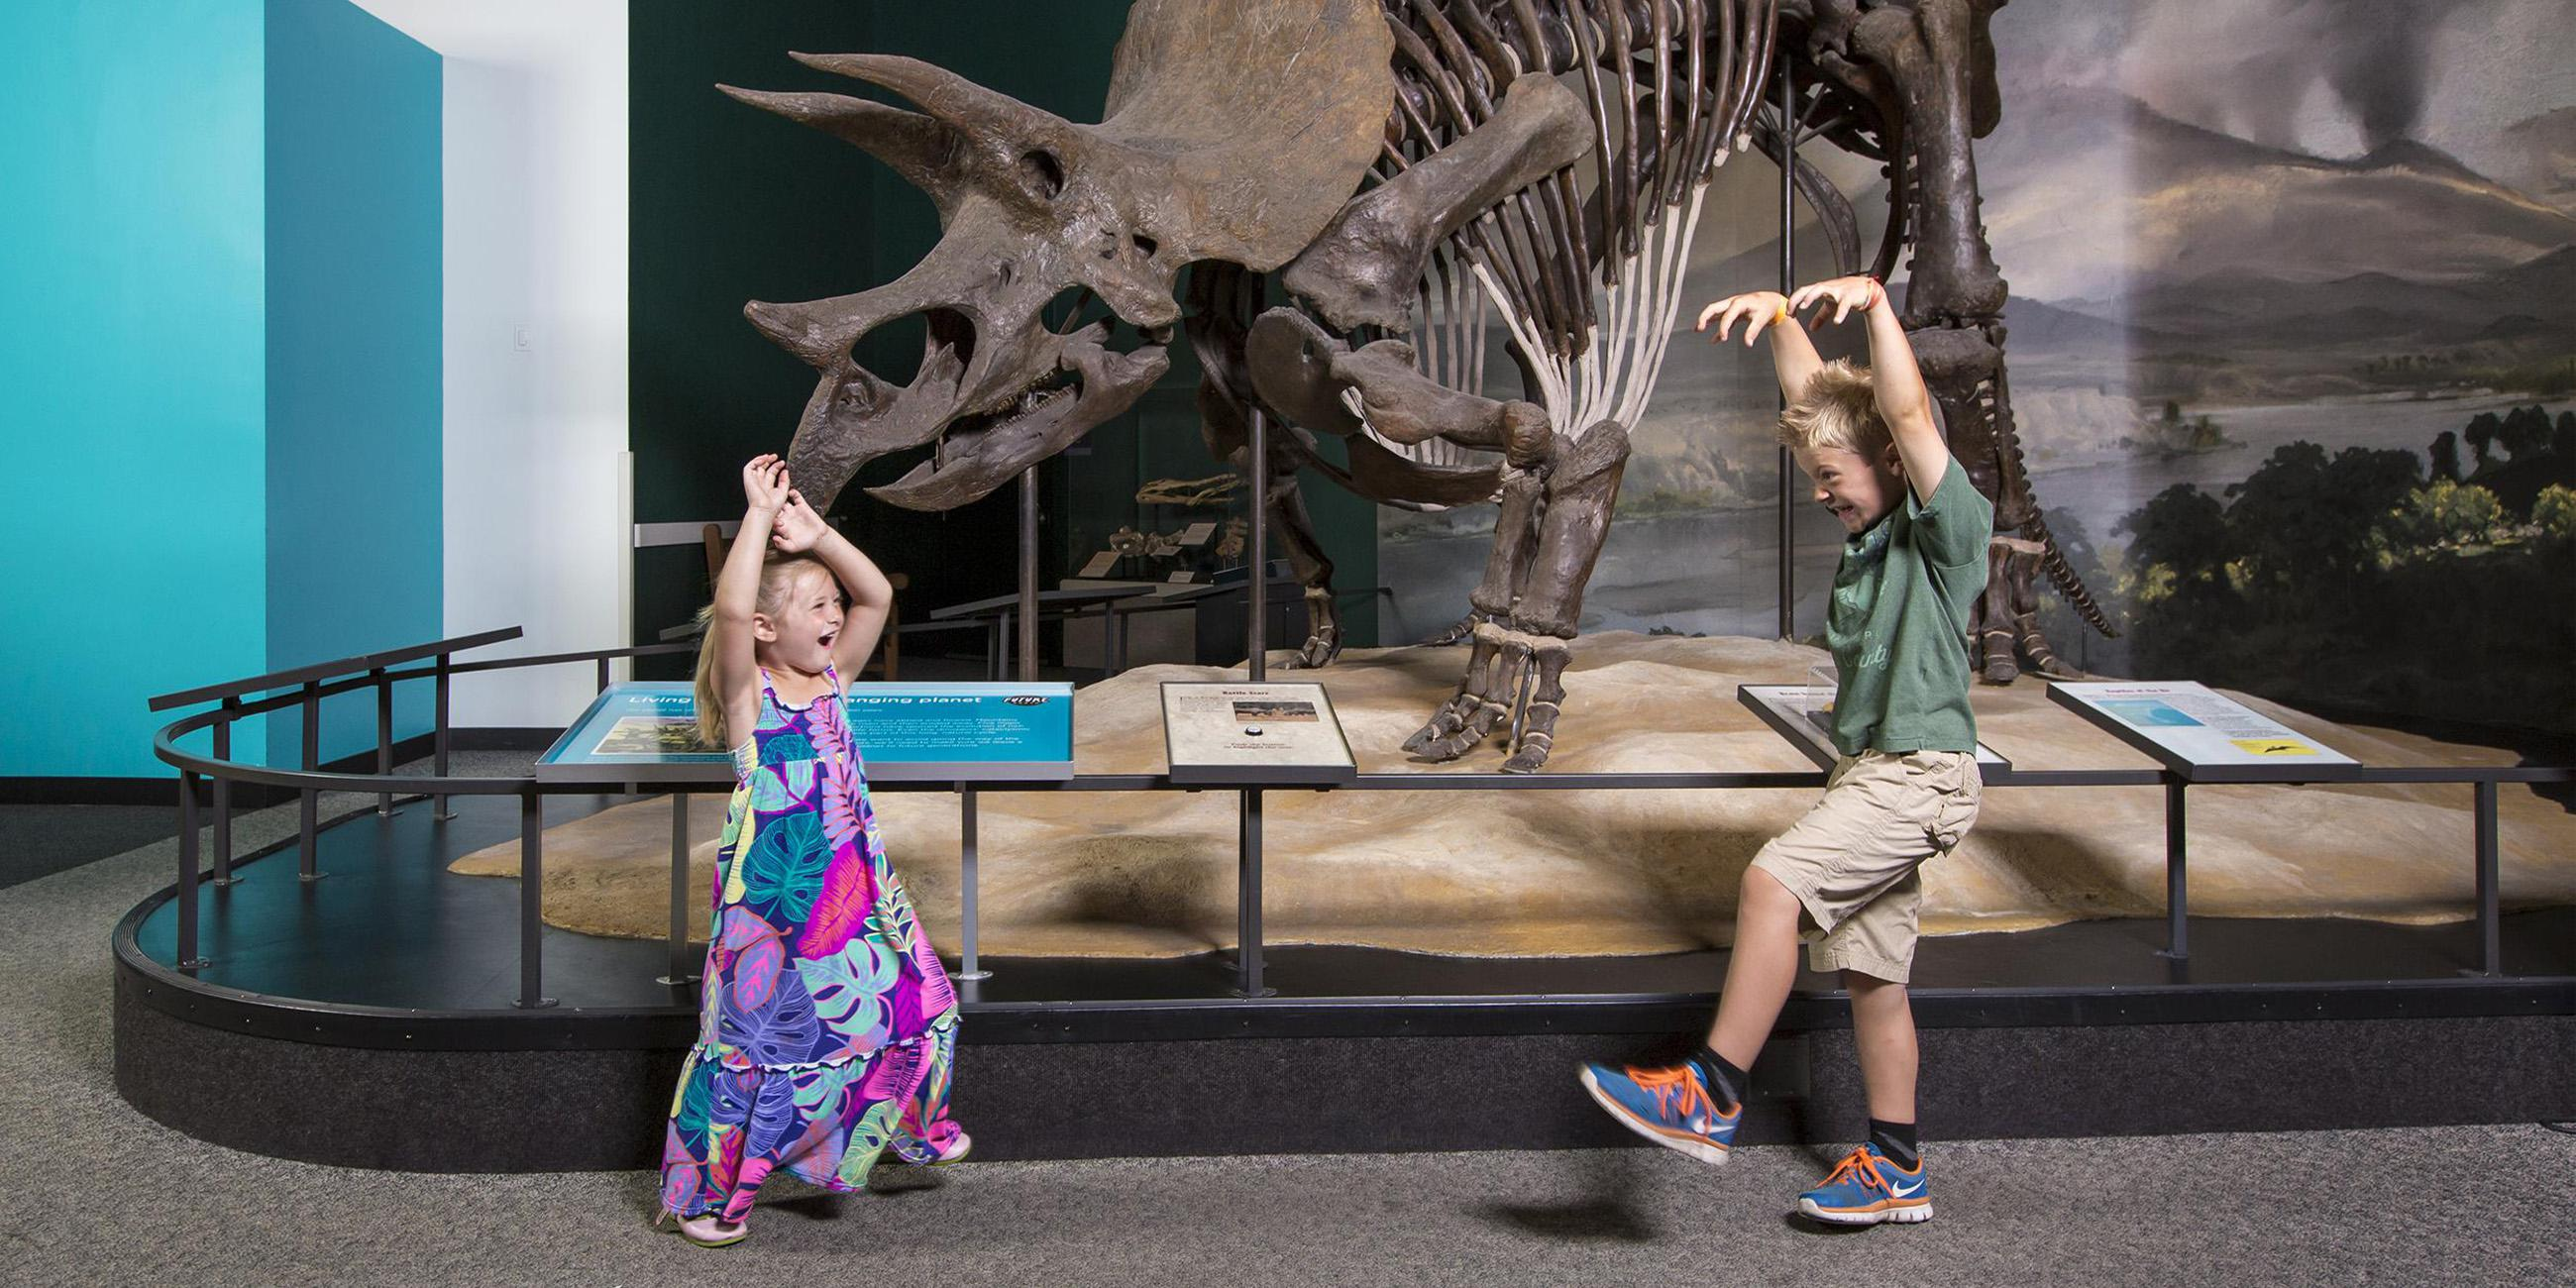 Two children playing in the Dinosaur gallery.